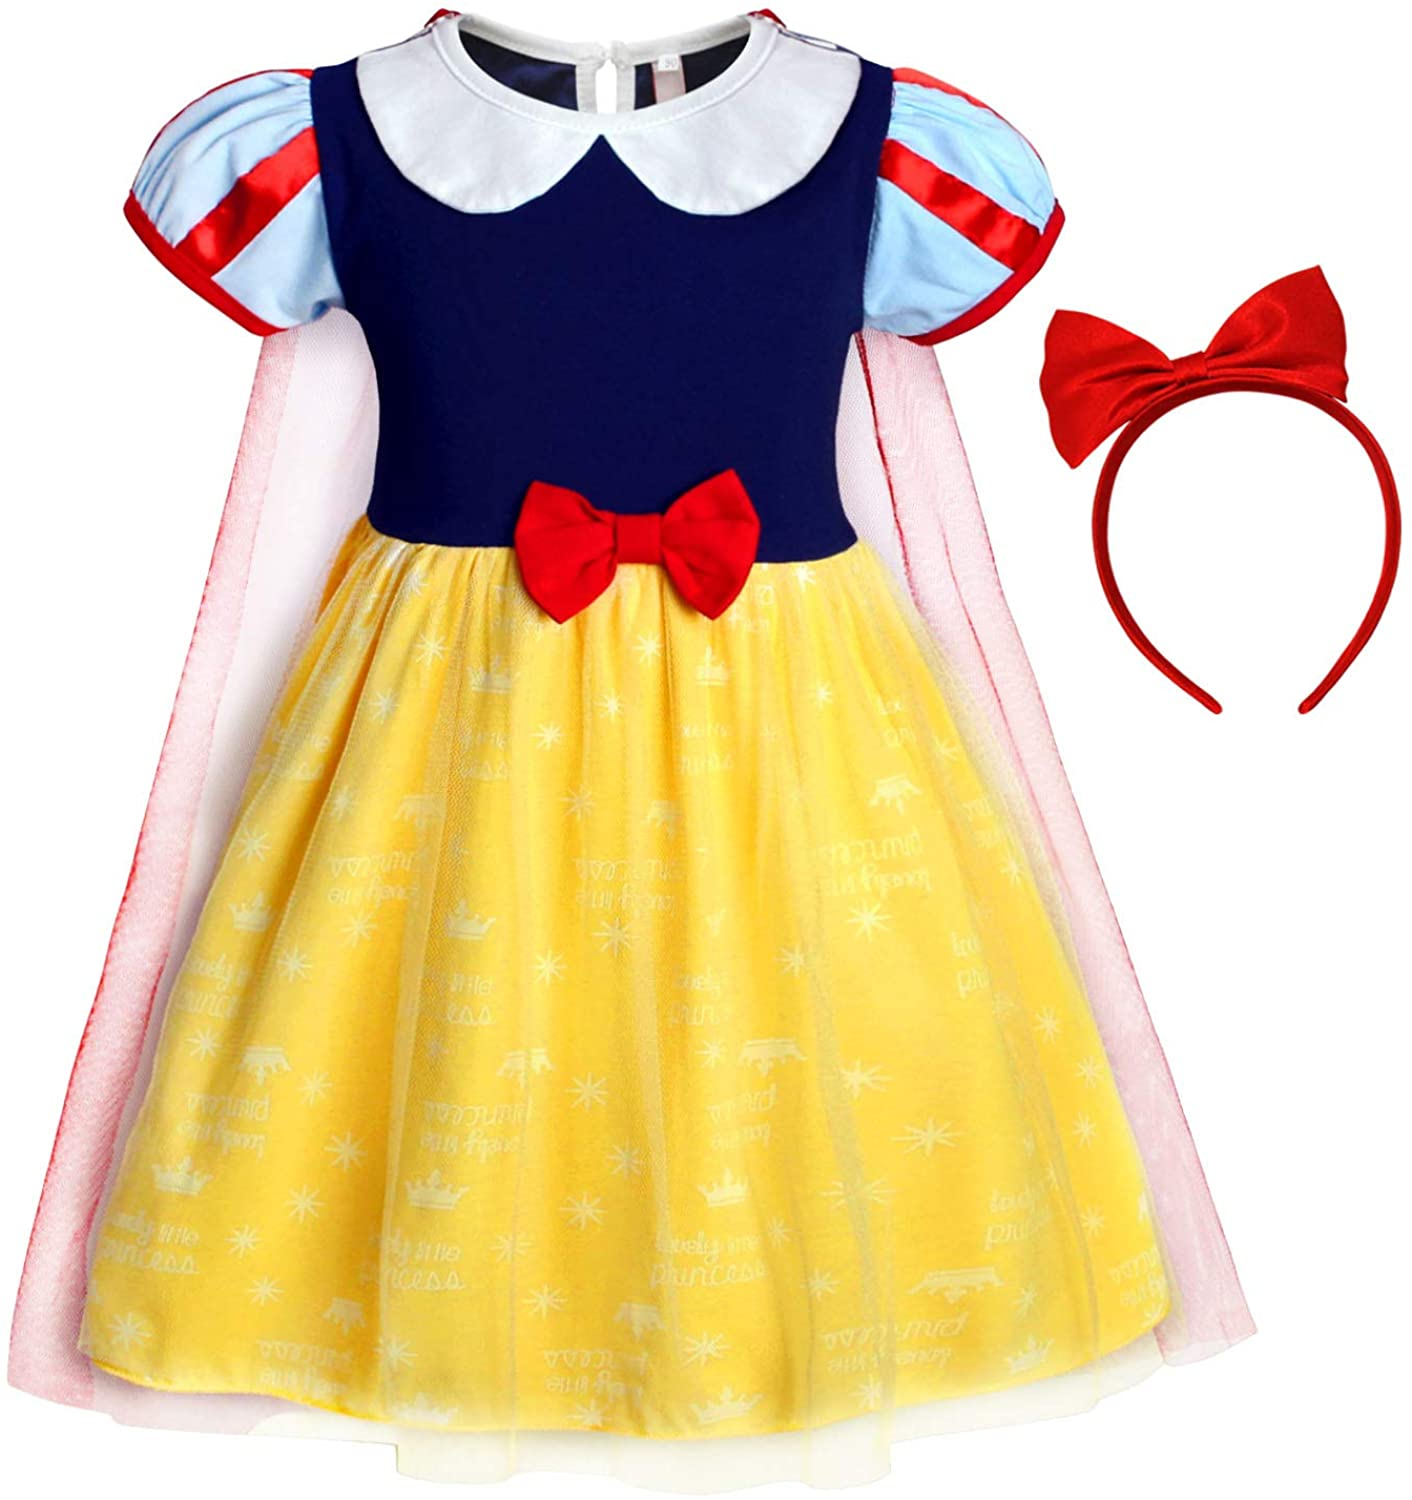 AmzBarley Girls Princess Costume Outfits Dress Halloween Birthday Party Dress Up Cotton Dress with Bowknot Headband